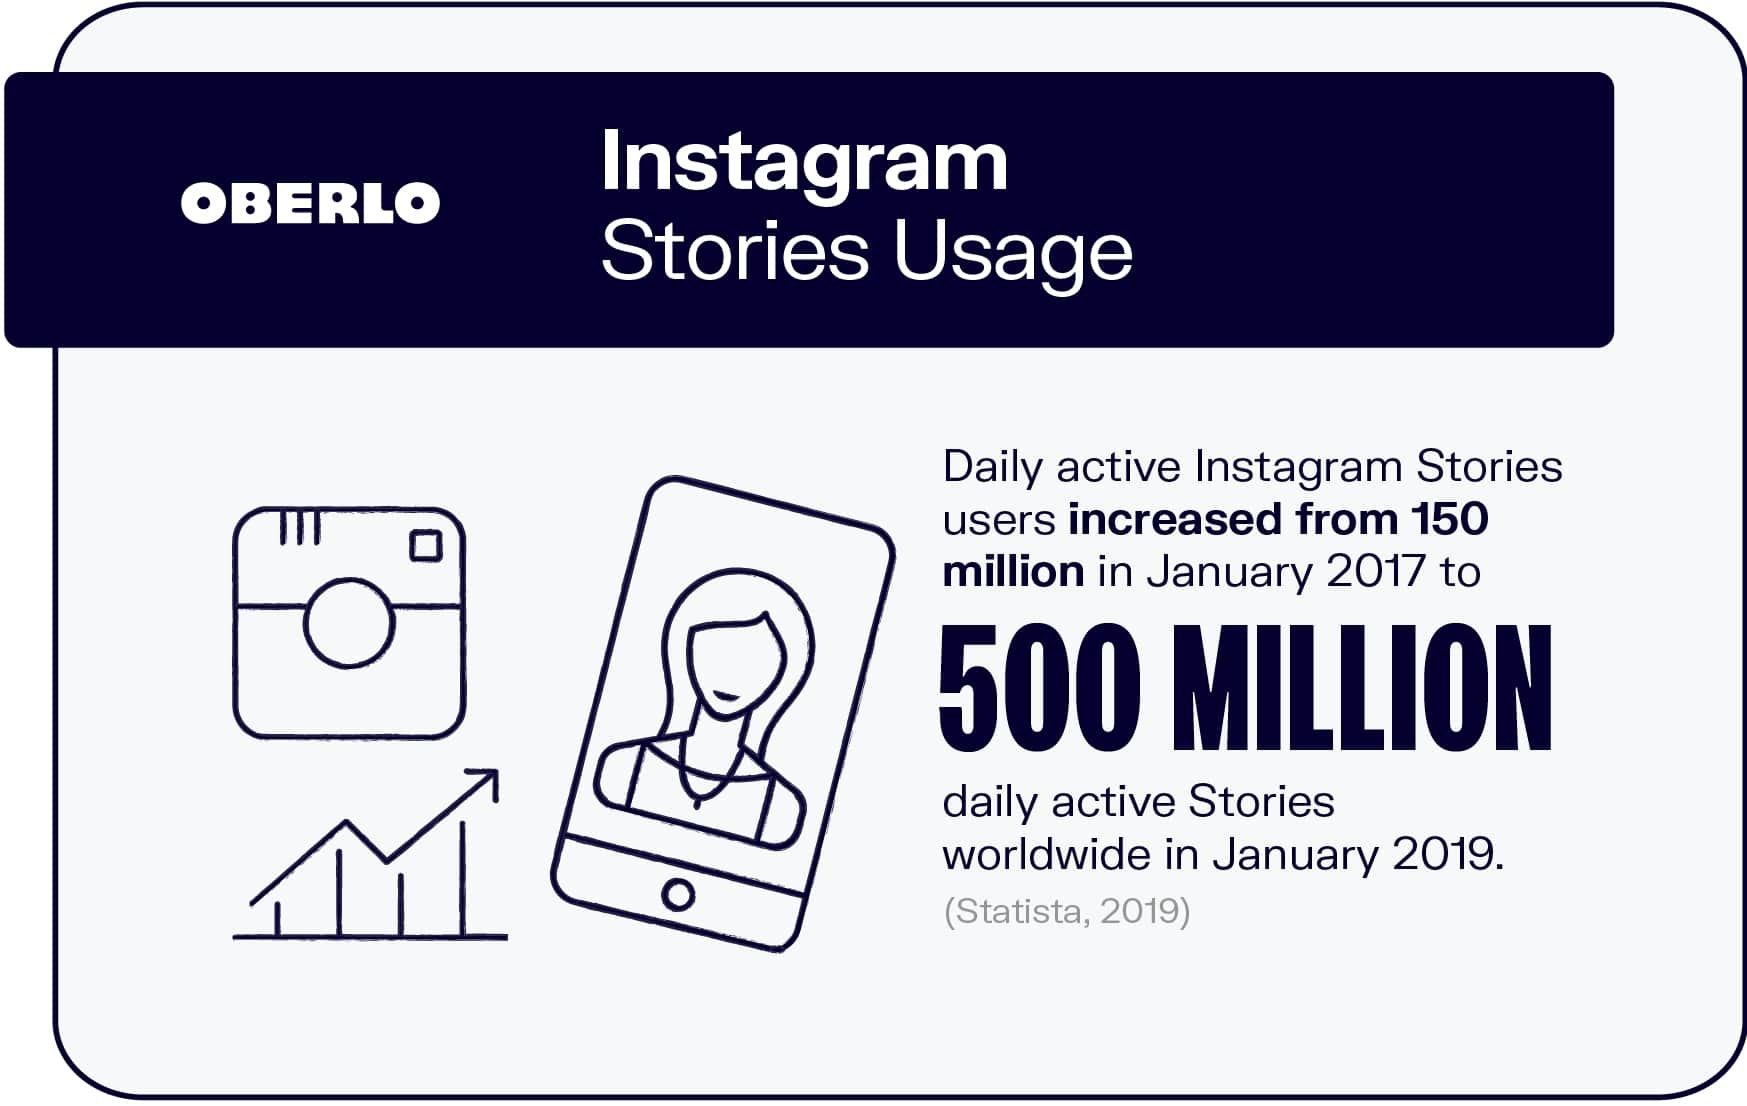 Instagram Stories Usage